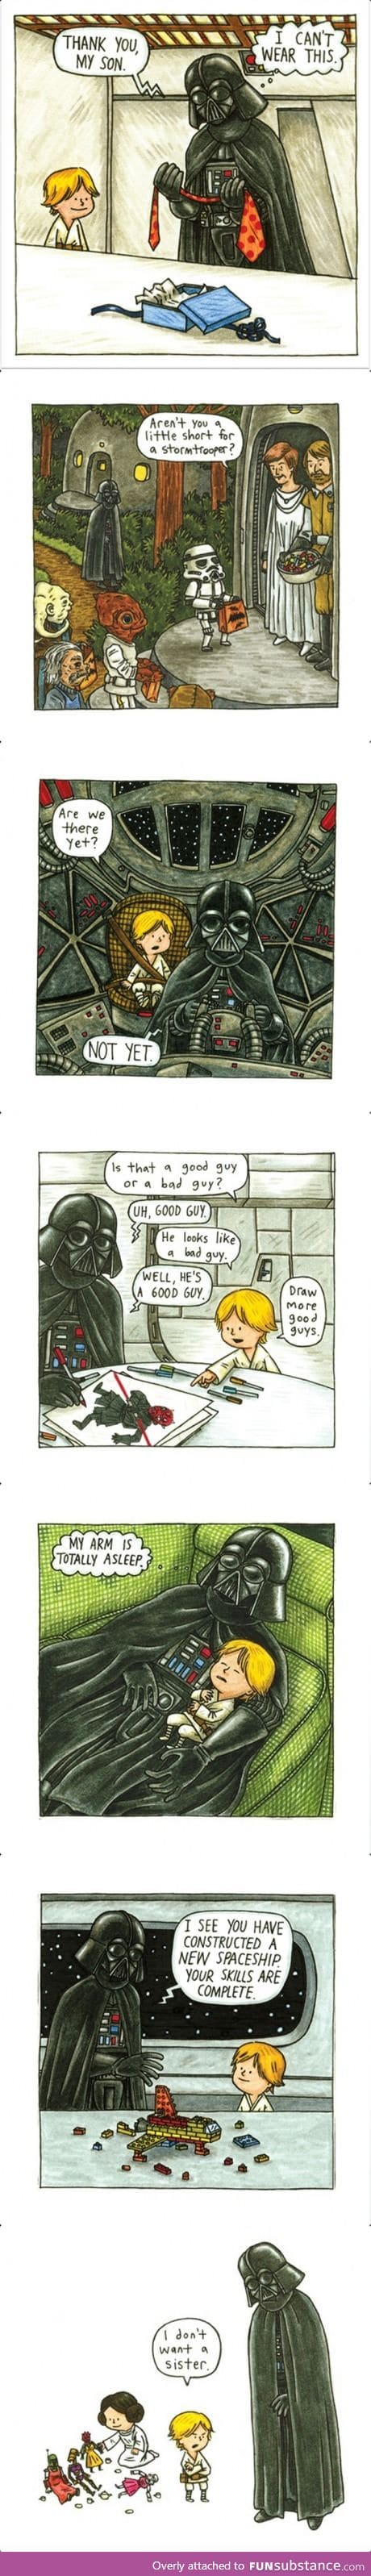 Some Darth Vader and Son! :D